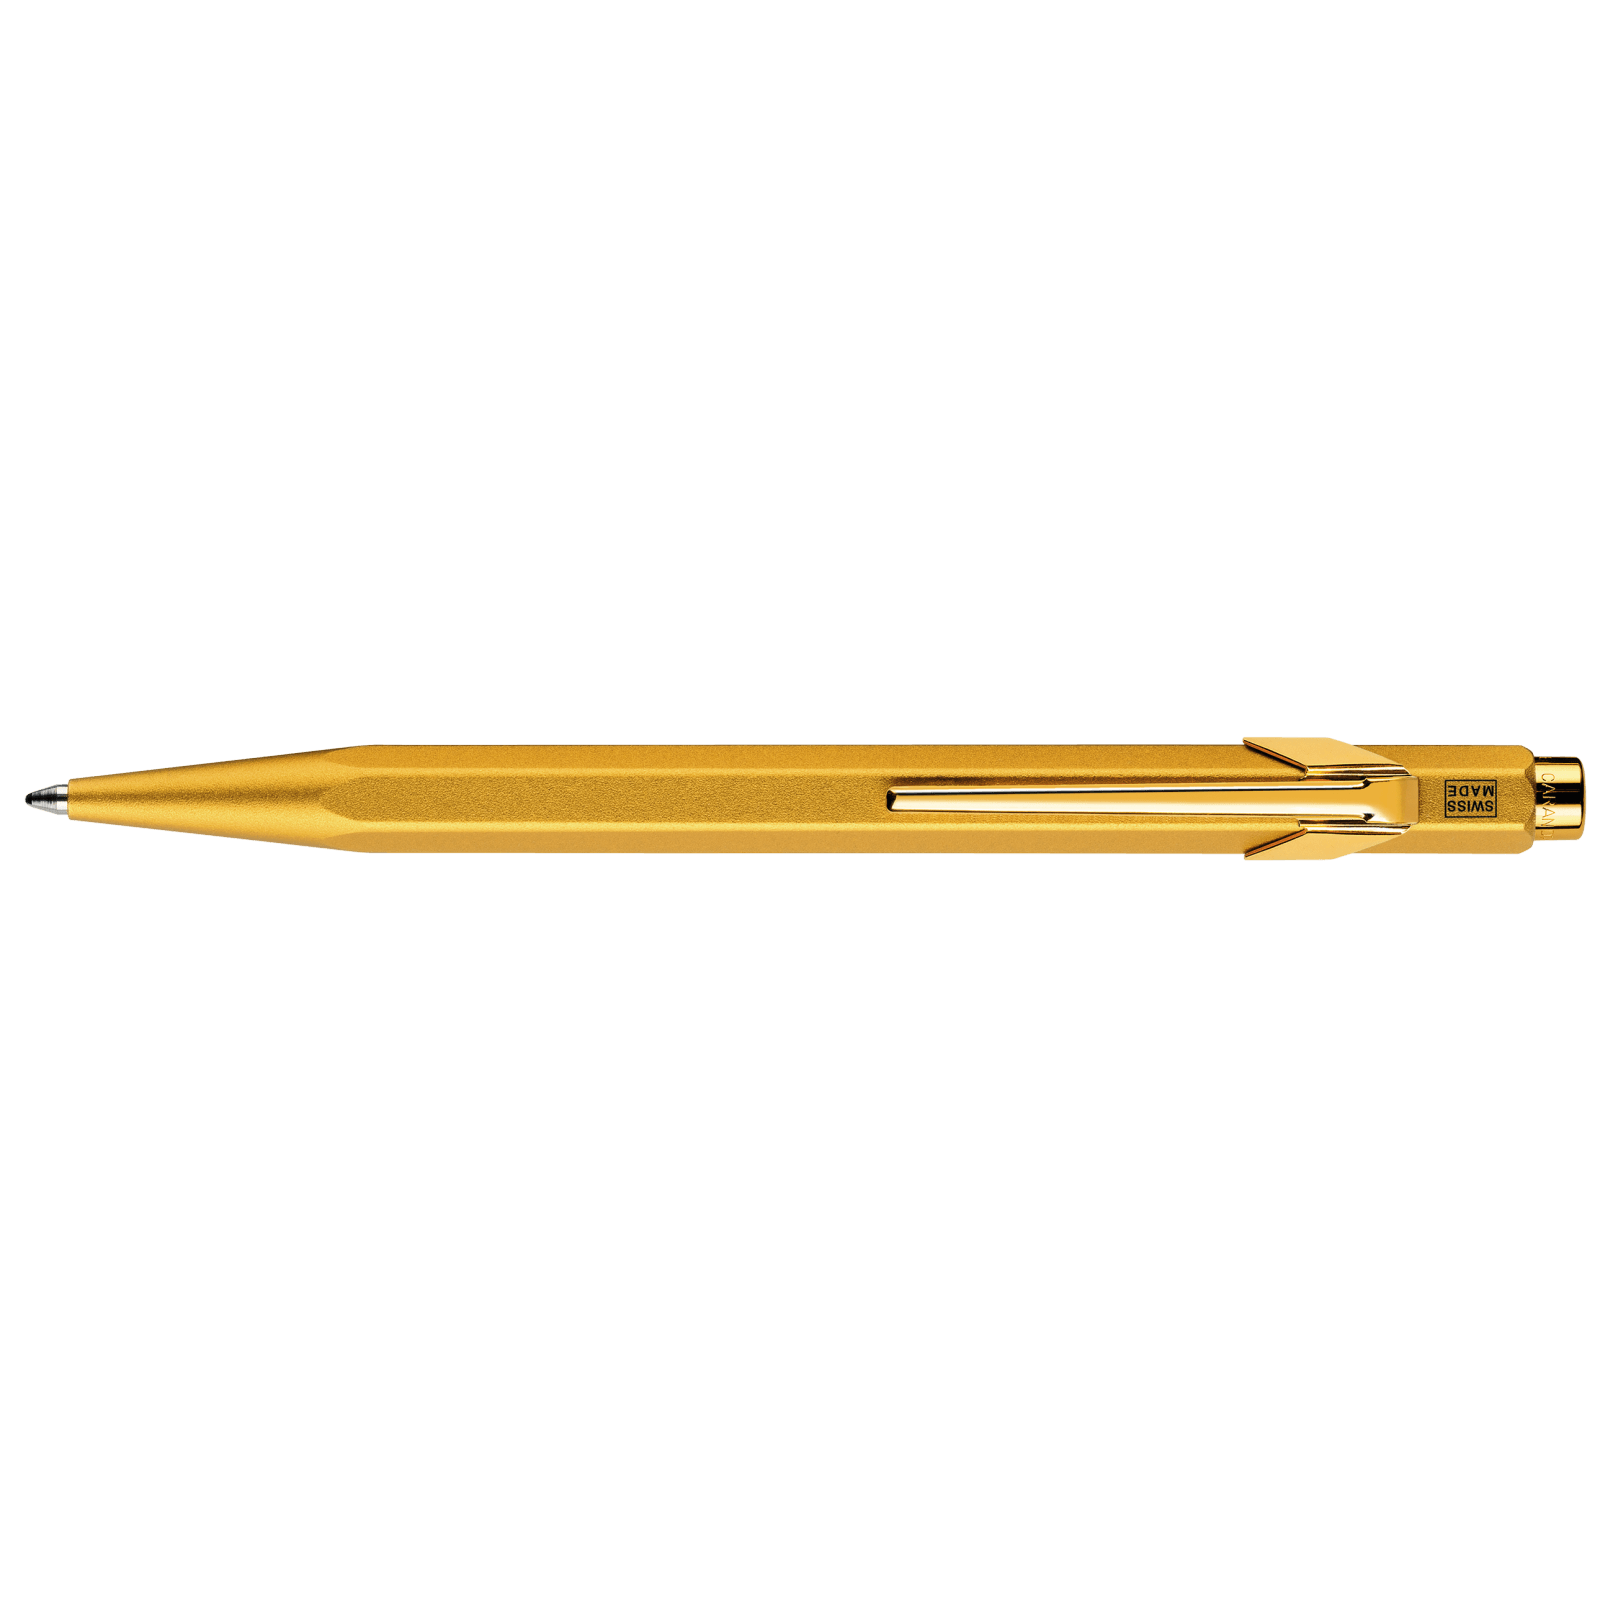 Pen Png Image PNG Image